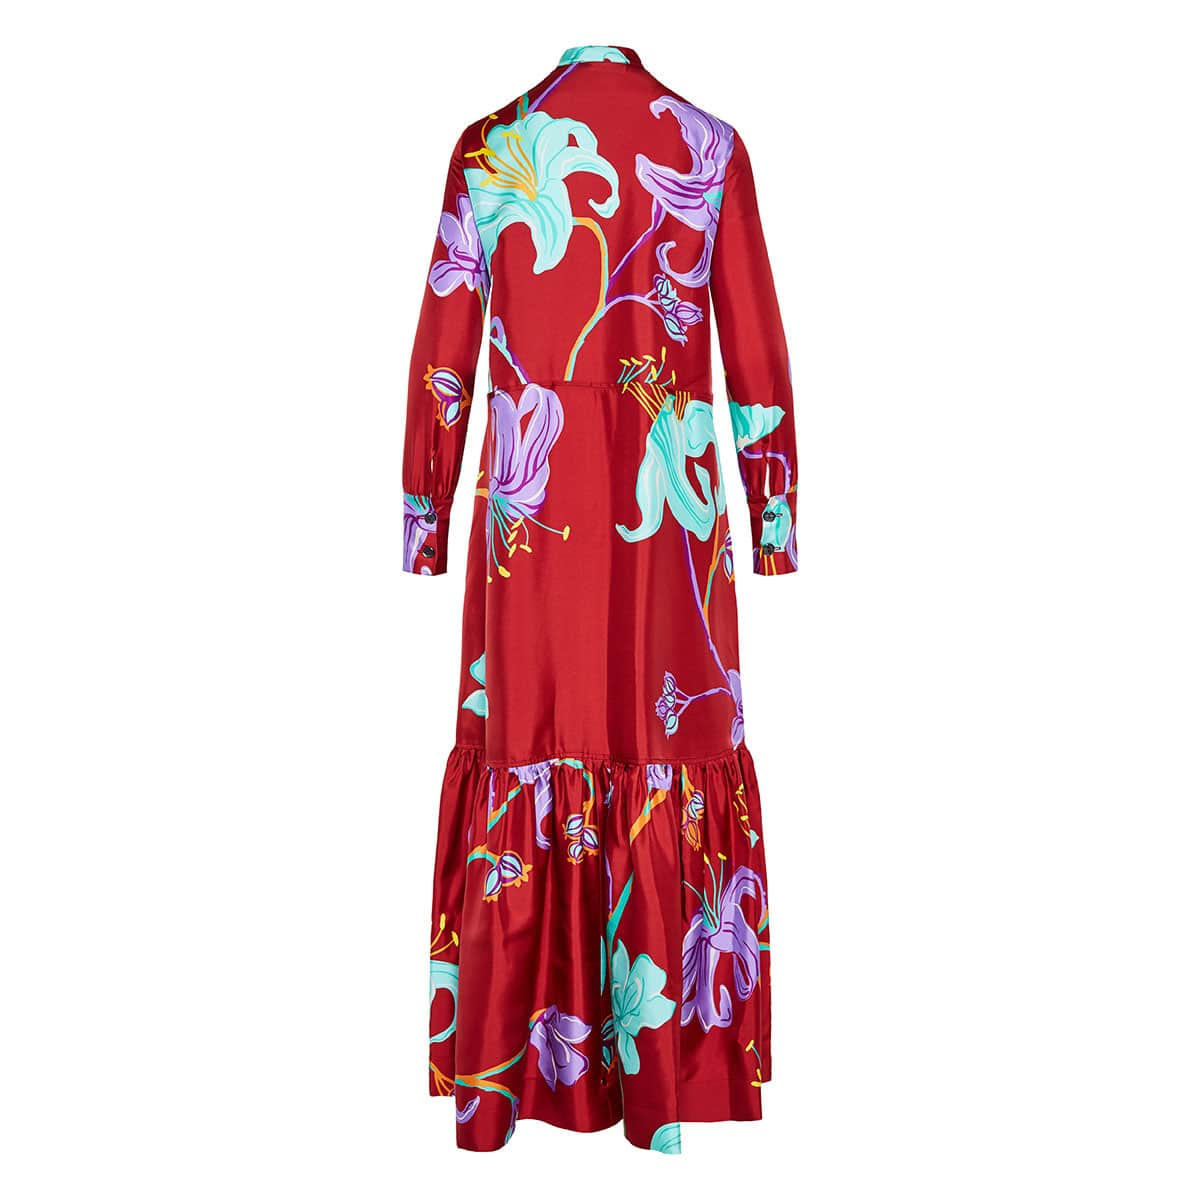 Printed long tiered dress